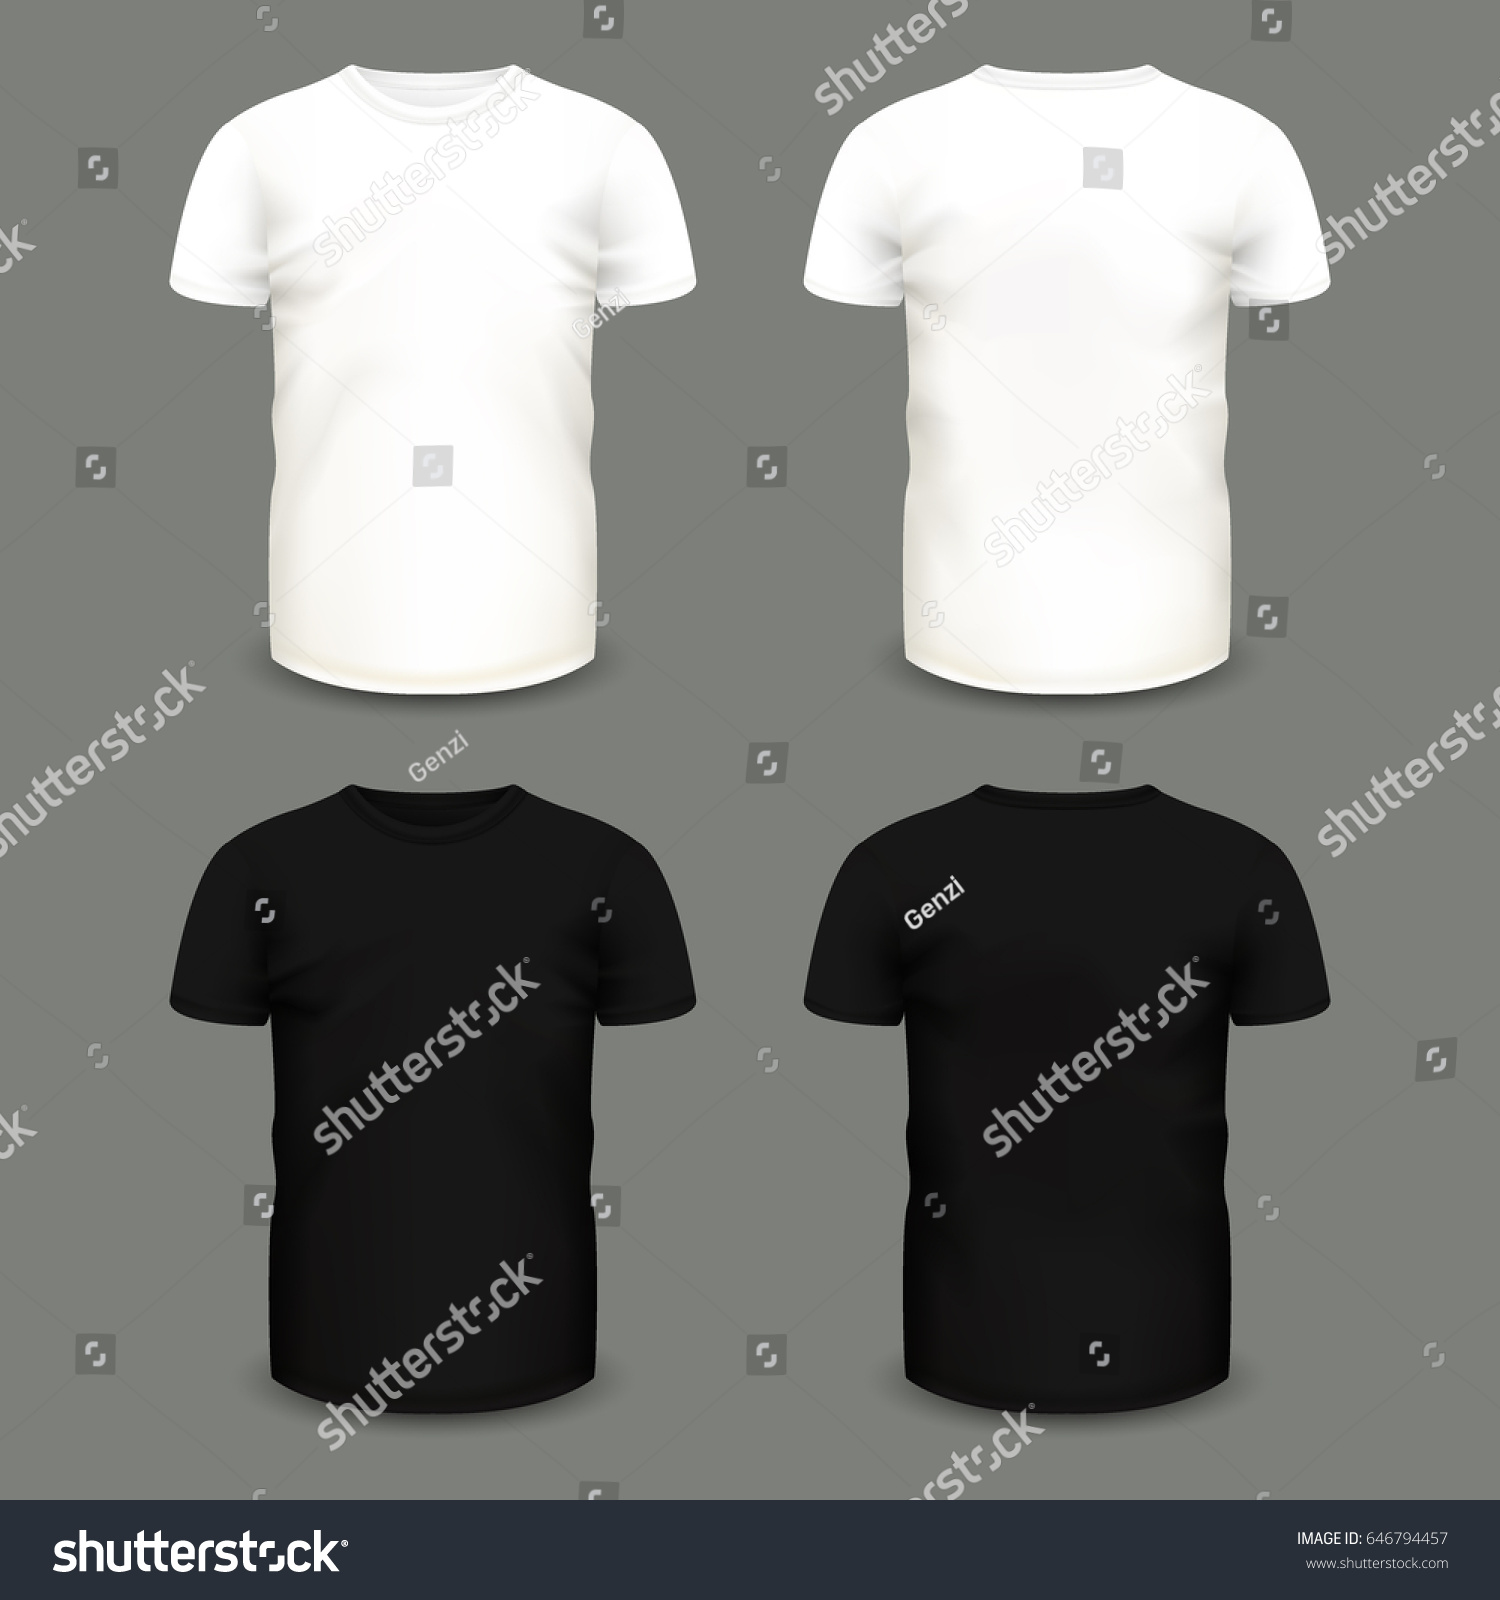 Black t shirt vector template - Set Of Men S White And Black T Shirts In Front And Back Views Volumetric